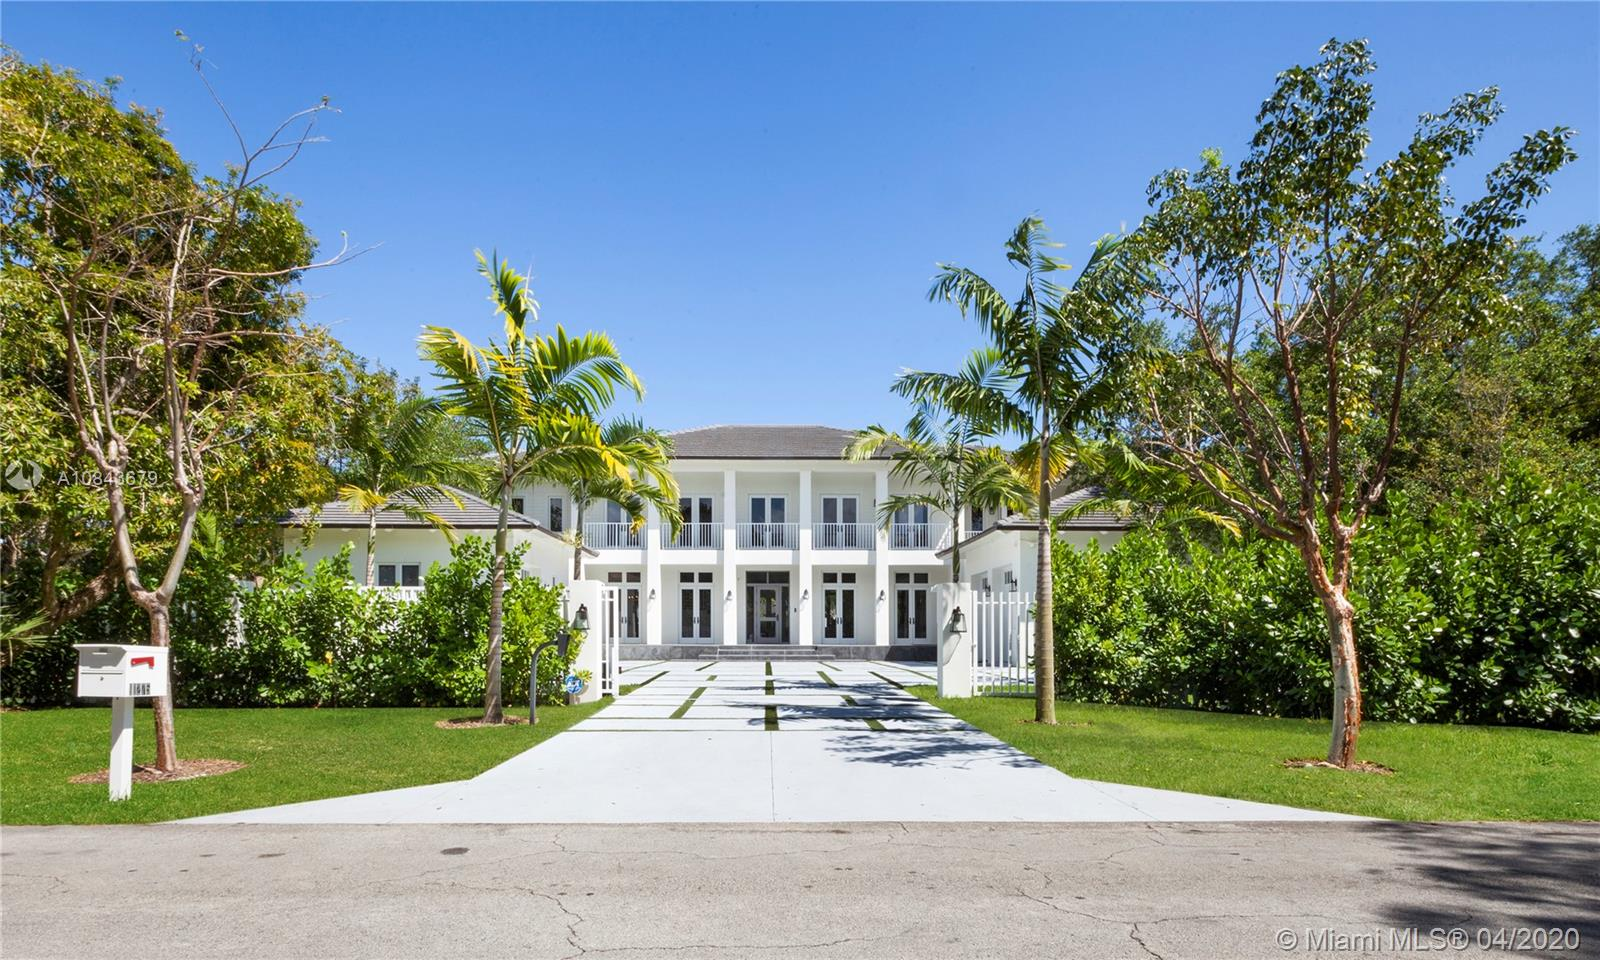 11275 SW 64th Ave, Coral Gables, Florida